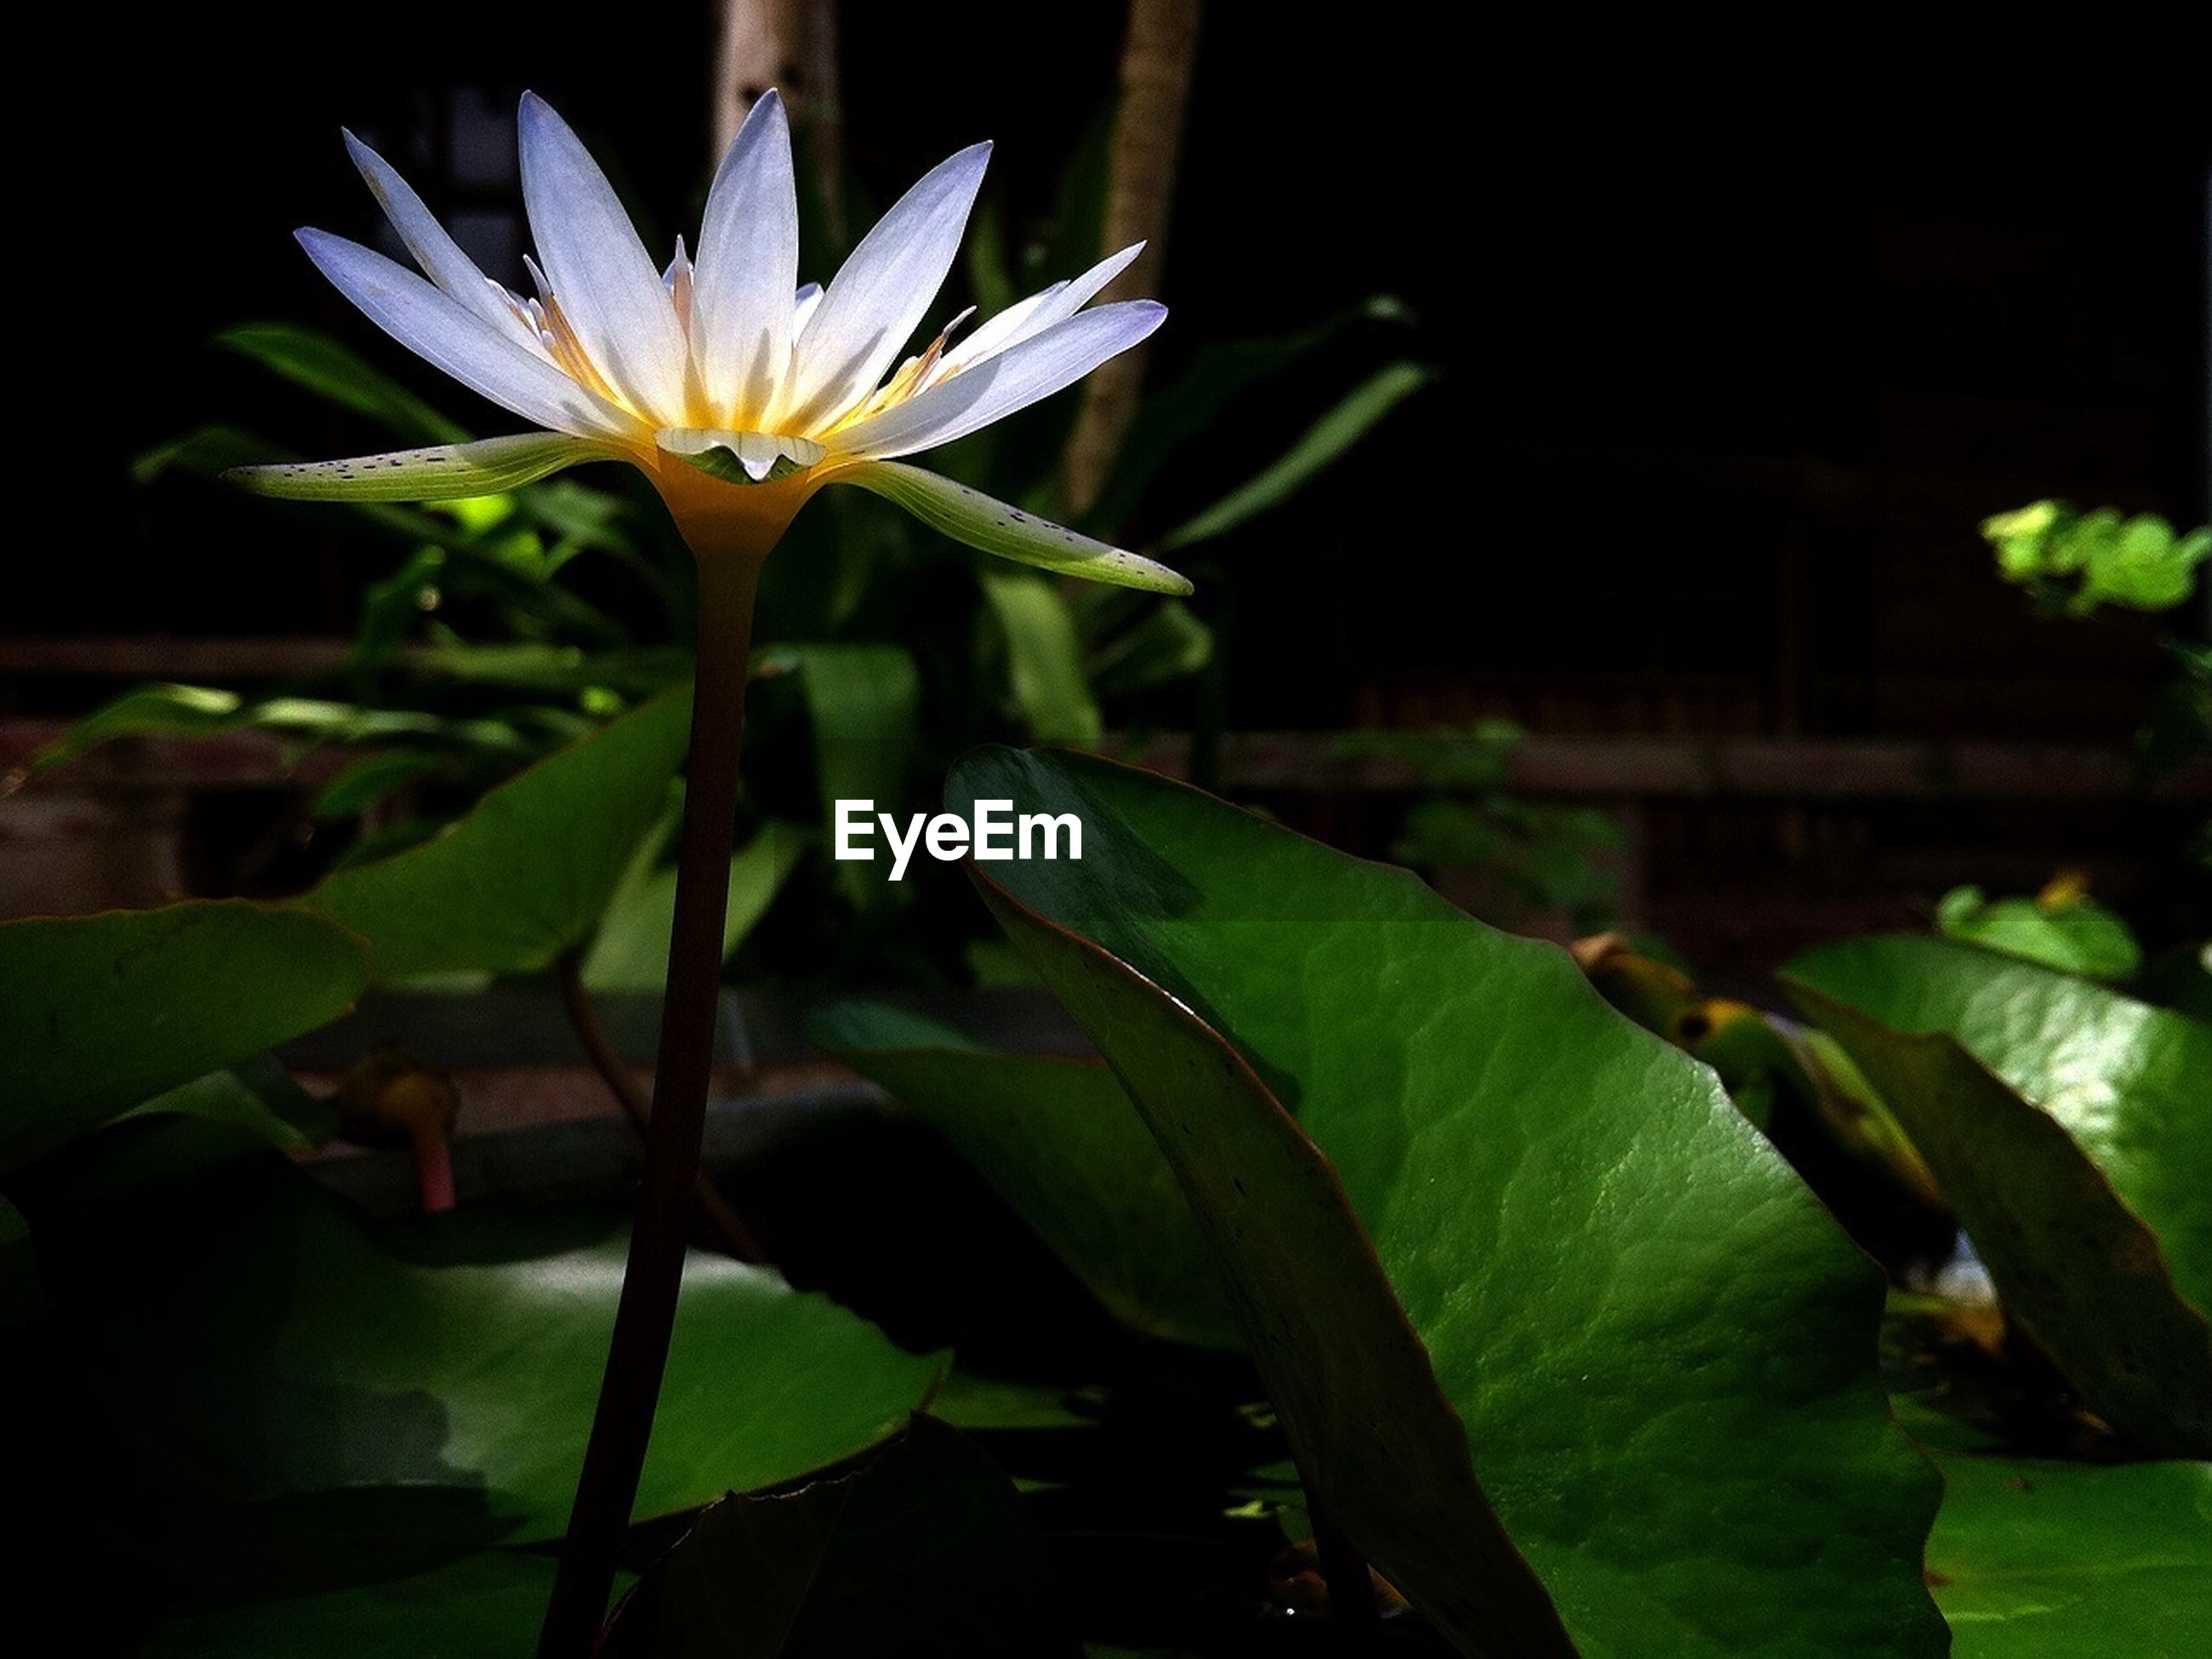 flower, leaf, petal, growth, freshness, fragility, plant, beauty in nature, flower head, water lily, nature, blooming, green color, pond, close-up, single flower, stem, in bloom, lotus water lily, botany